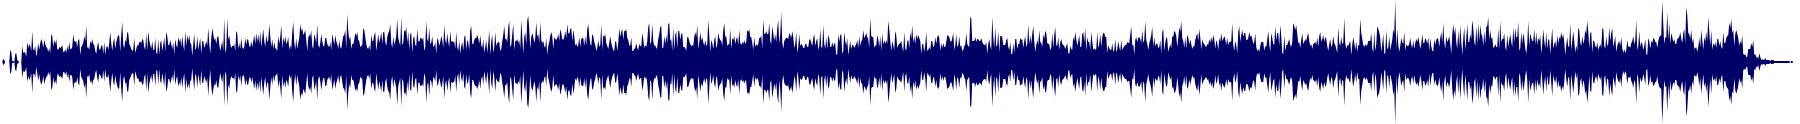 waveform of track #70735